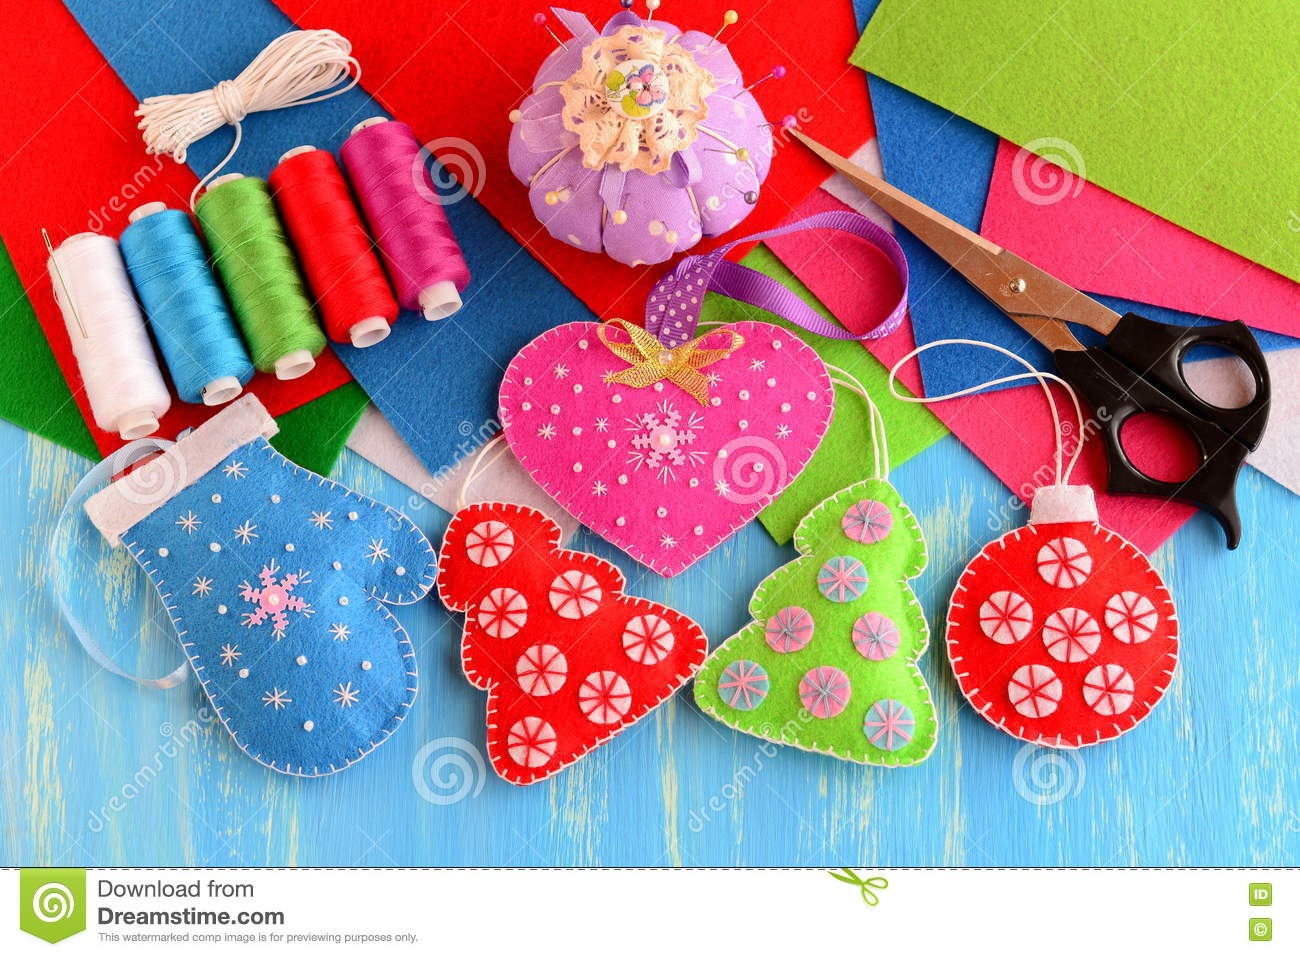 Blue green christmas tree decorations - Christmas Tree Decorations Crafts Felt Pink Heart Red And Green Christmas Tree Blue